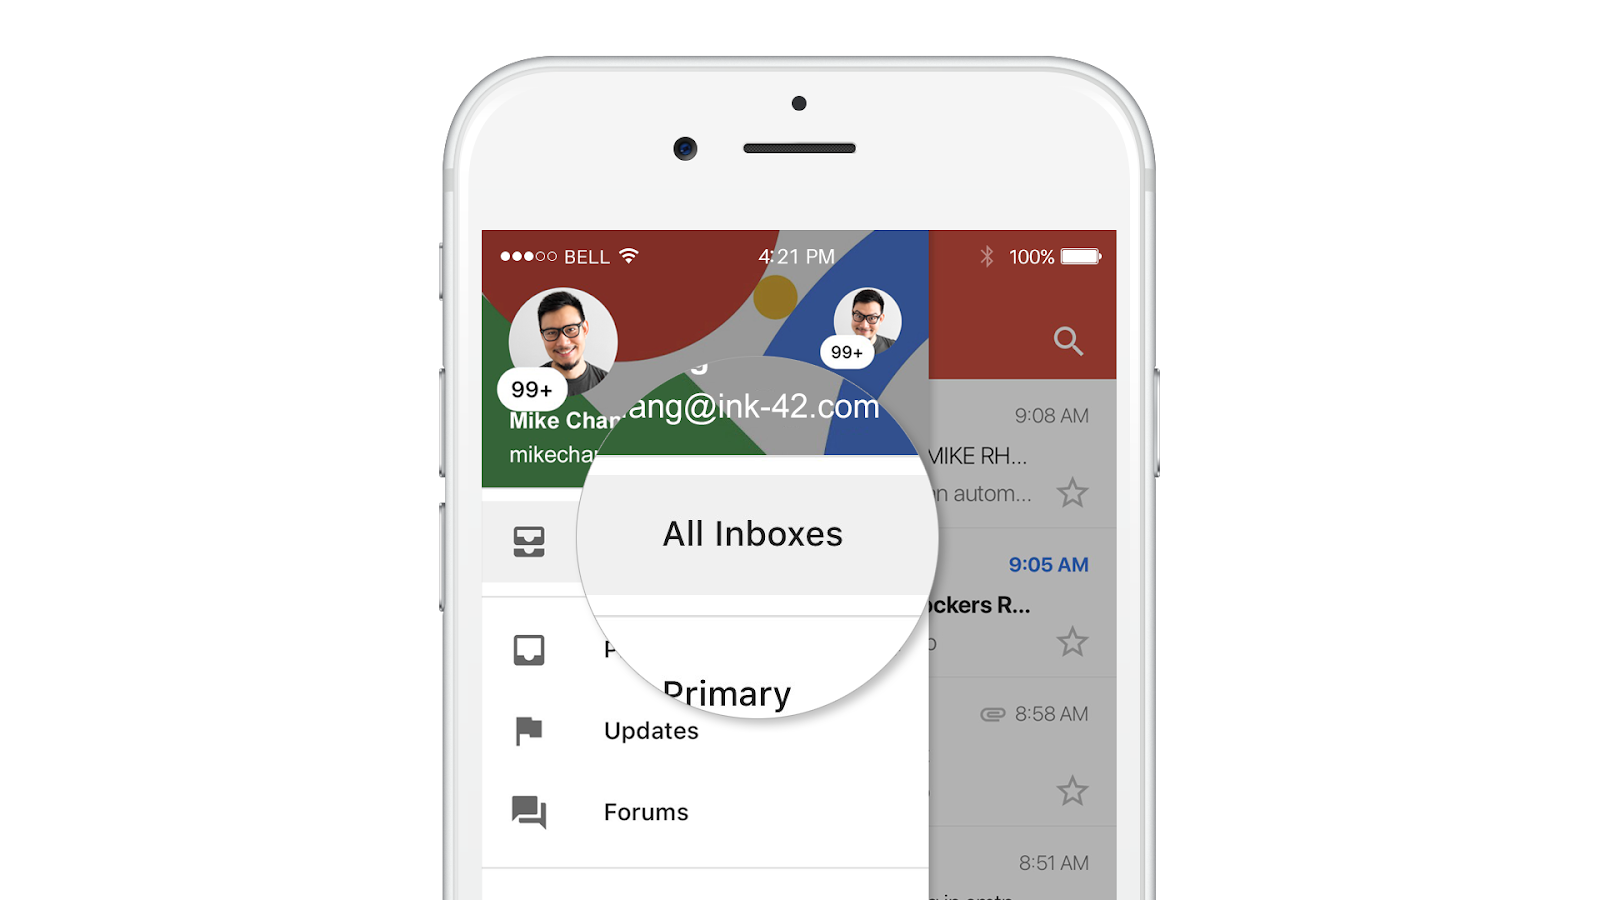 Gmail for iOS adds unified inbox to view emails from multiple